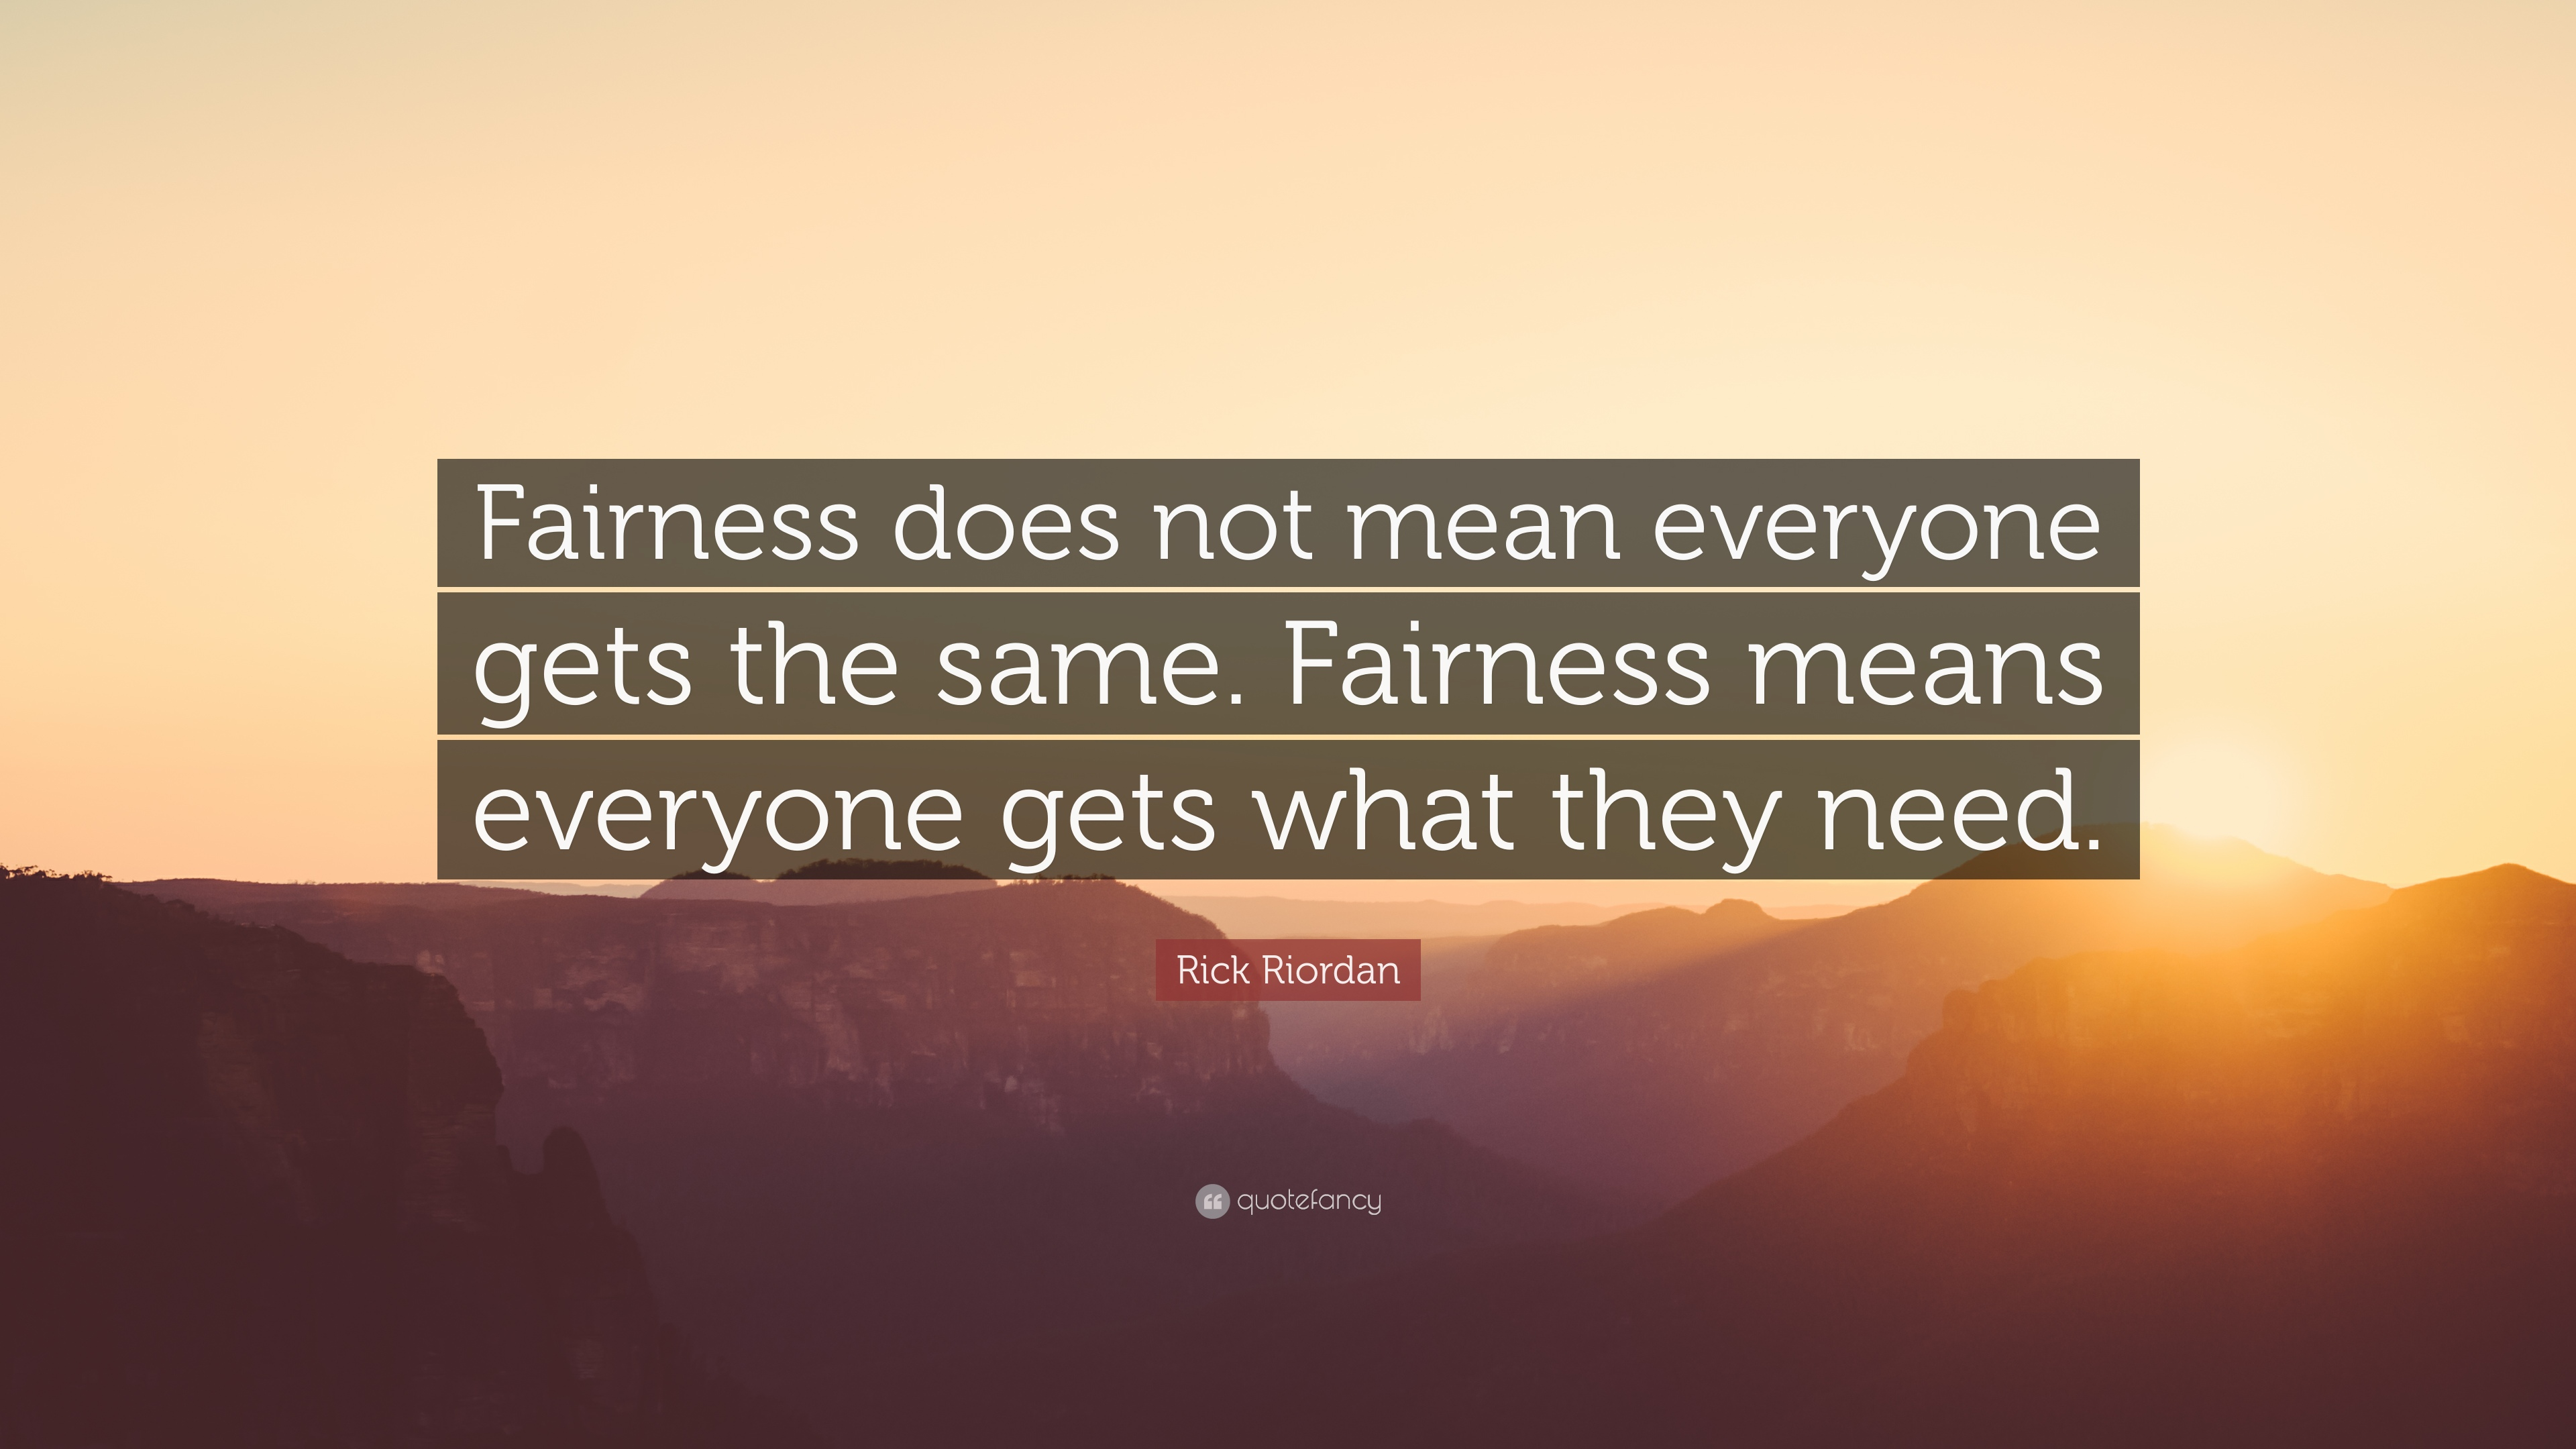 Rick Riordan Quote Fairness Does Not Mean Everyone Gets The Same Means